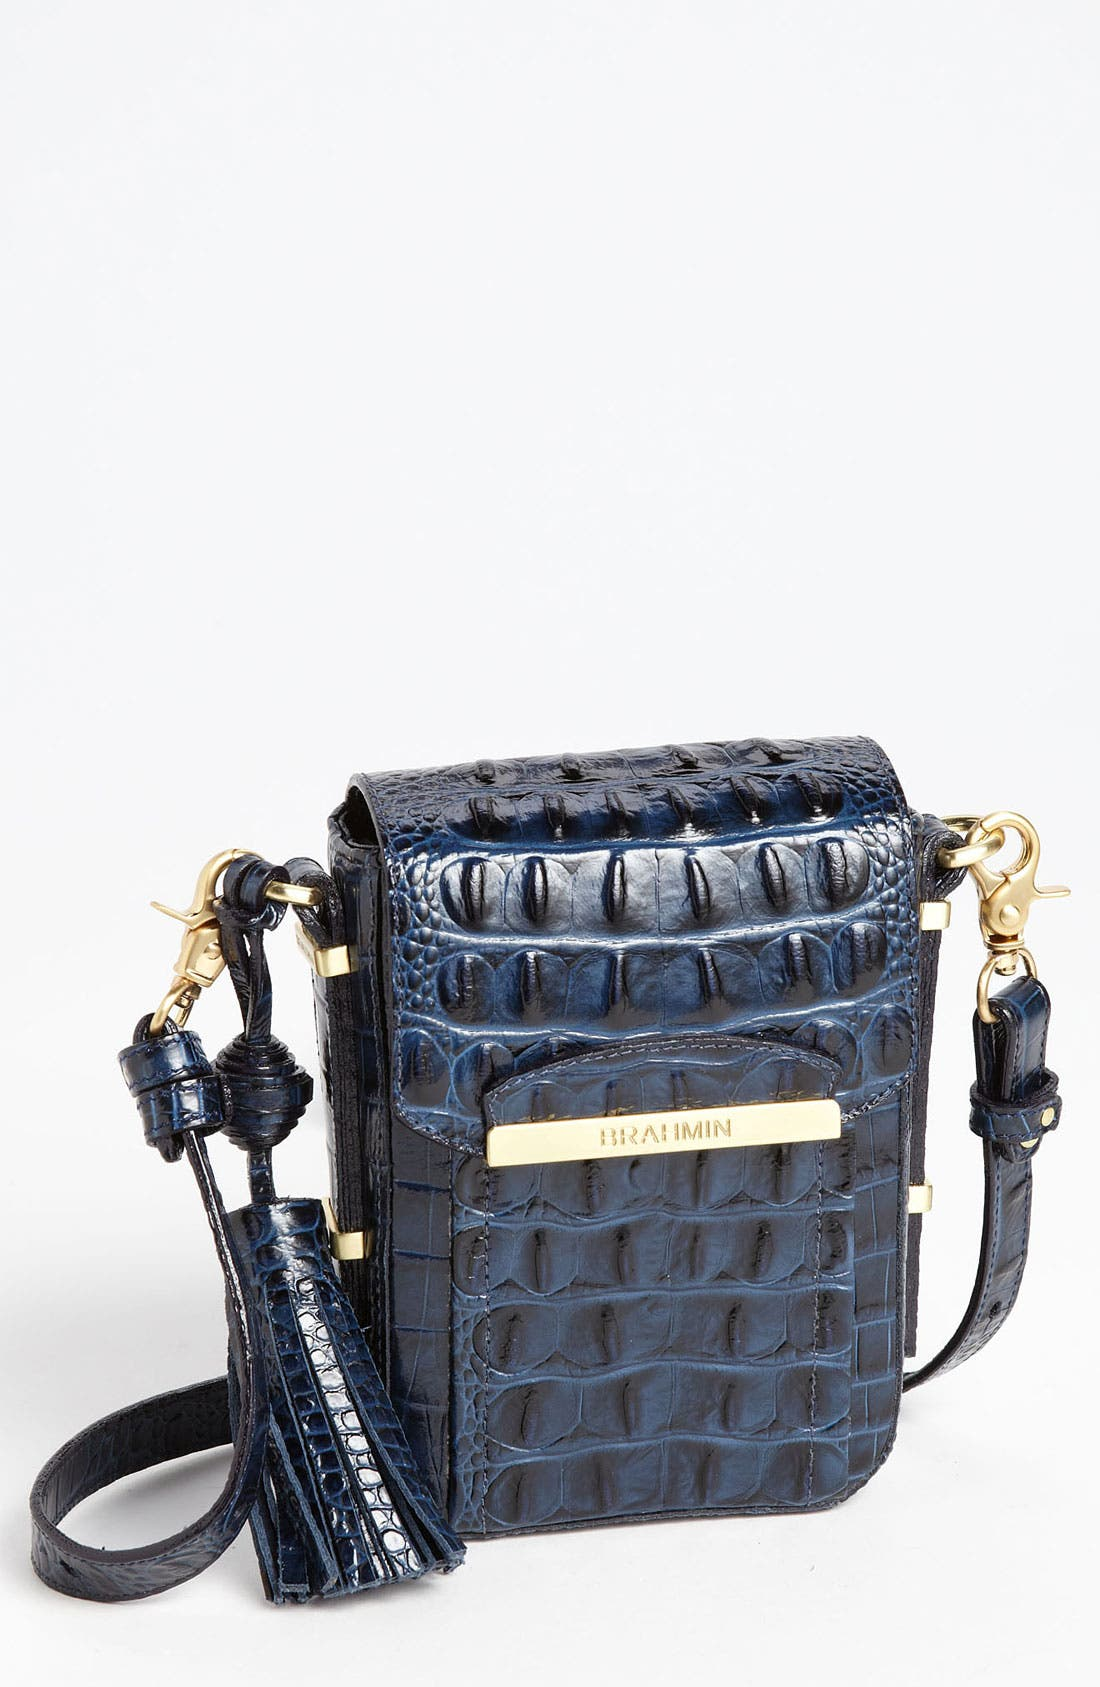 Alternate Image 1 Selected - Brahmin 'Sloane' Crossbody Bag